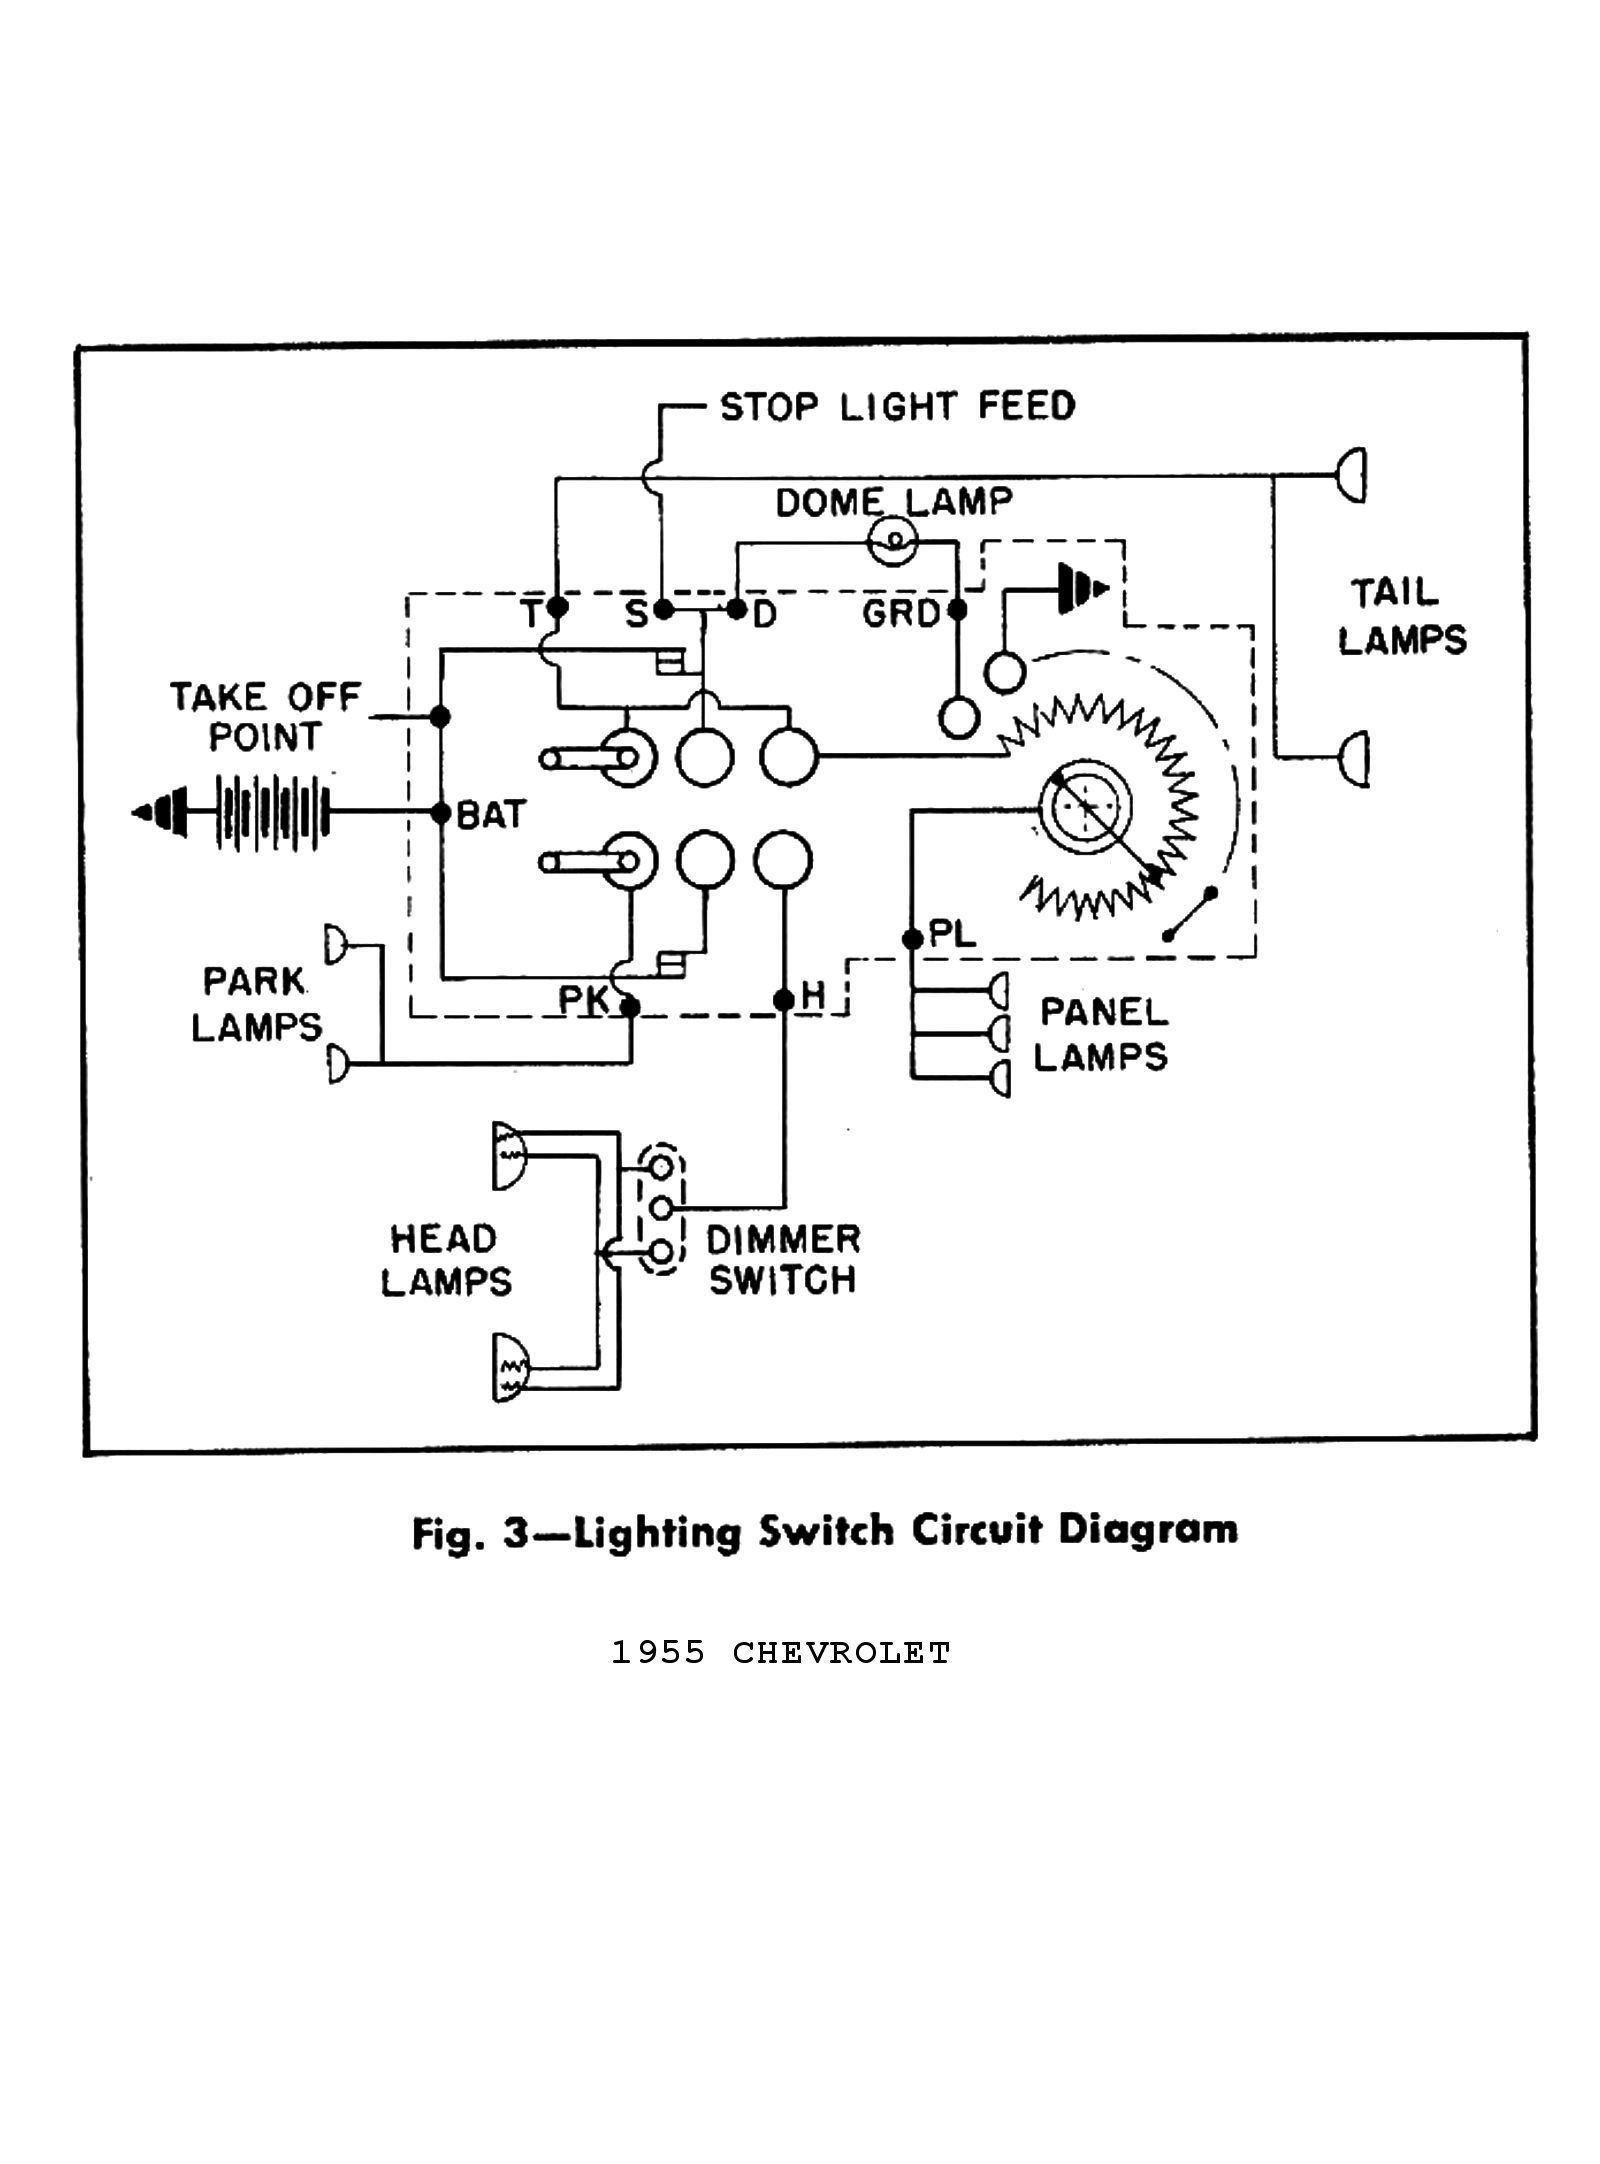 62 chevy headlight switch diagram wiring schematic all wiring diagram  62 impala wiring diagrams light switch #5